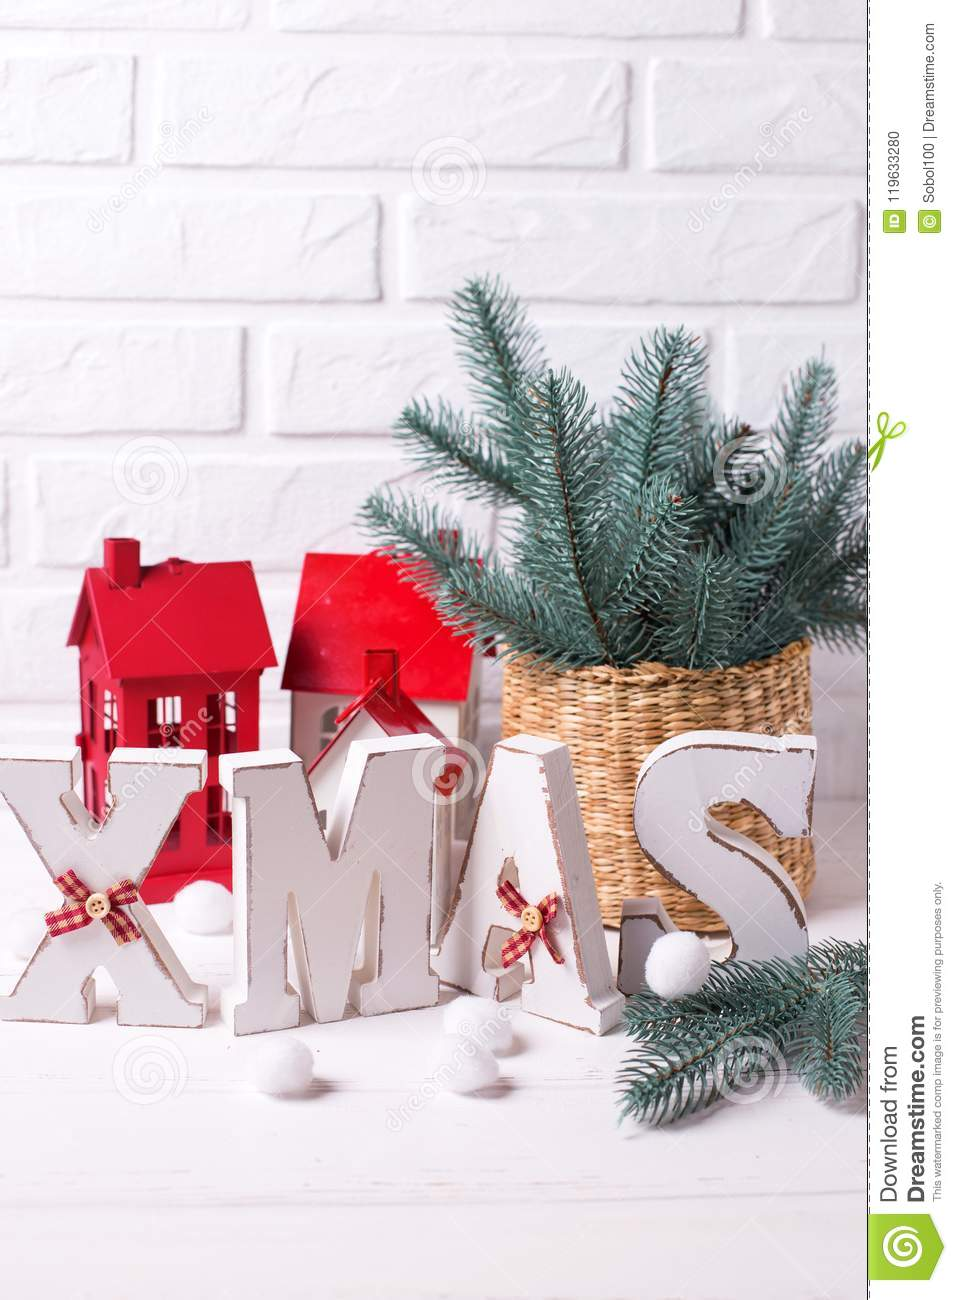 Word Xmas Made From Wooden Letters And Holiday Decorations On W